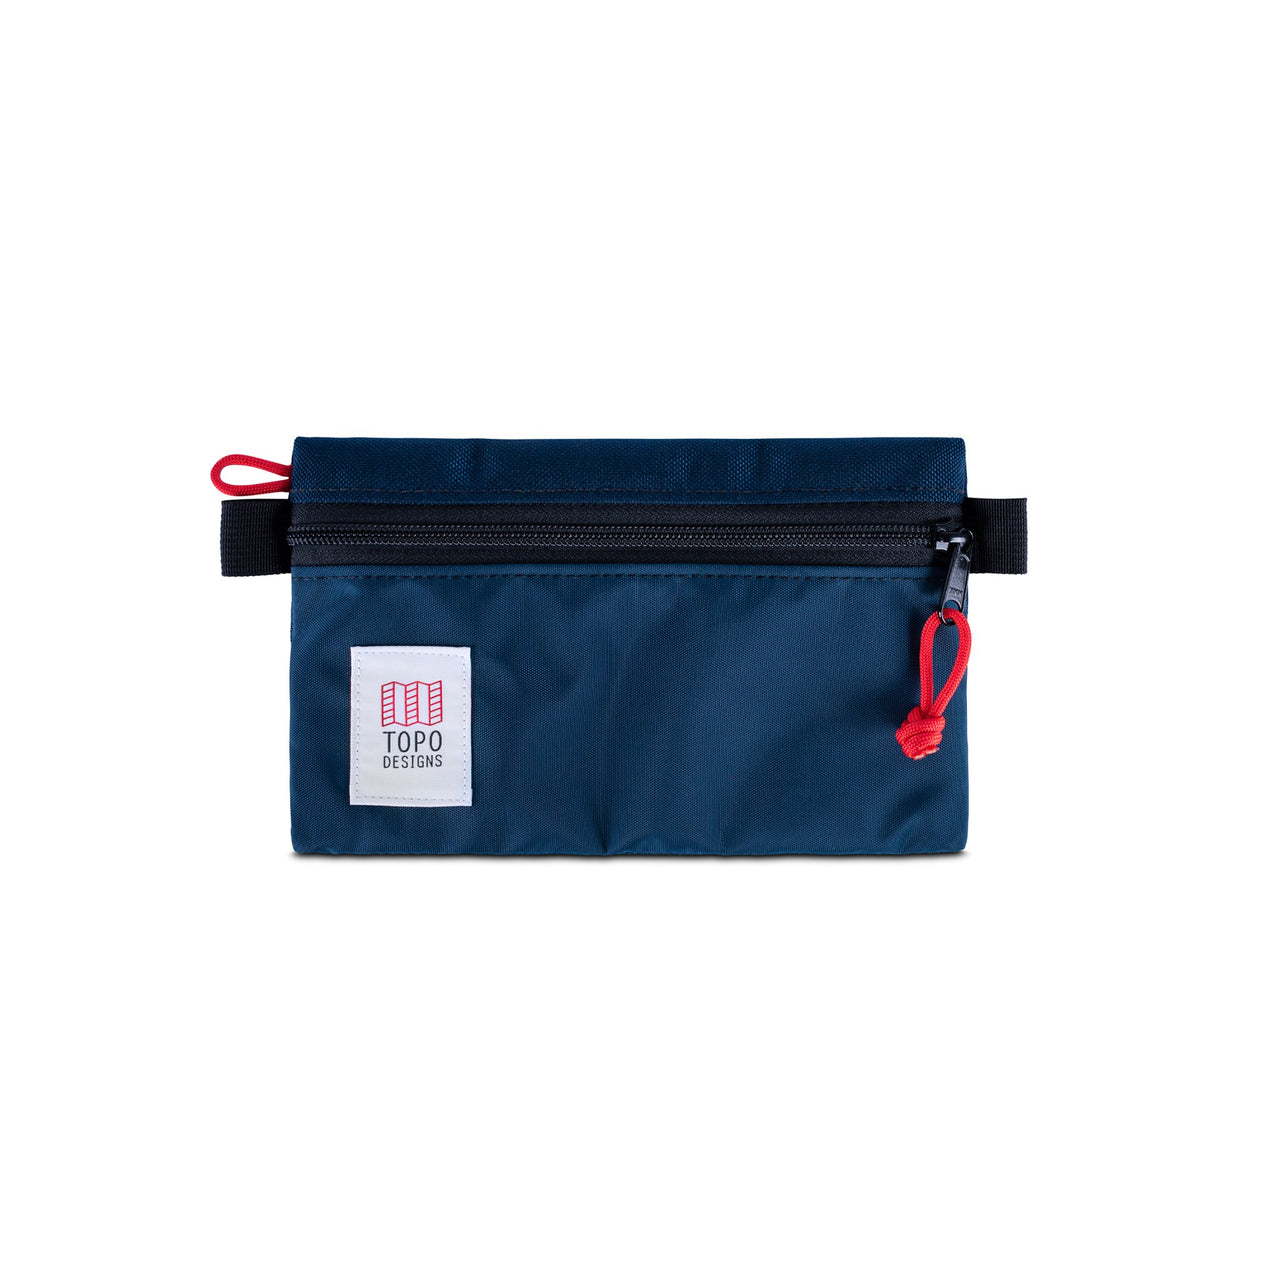 TOPO Accessory Bag Small